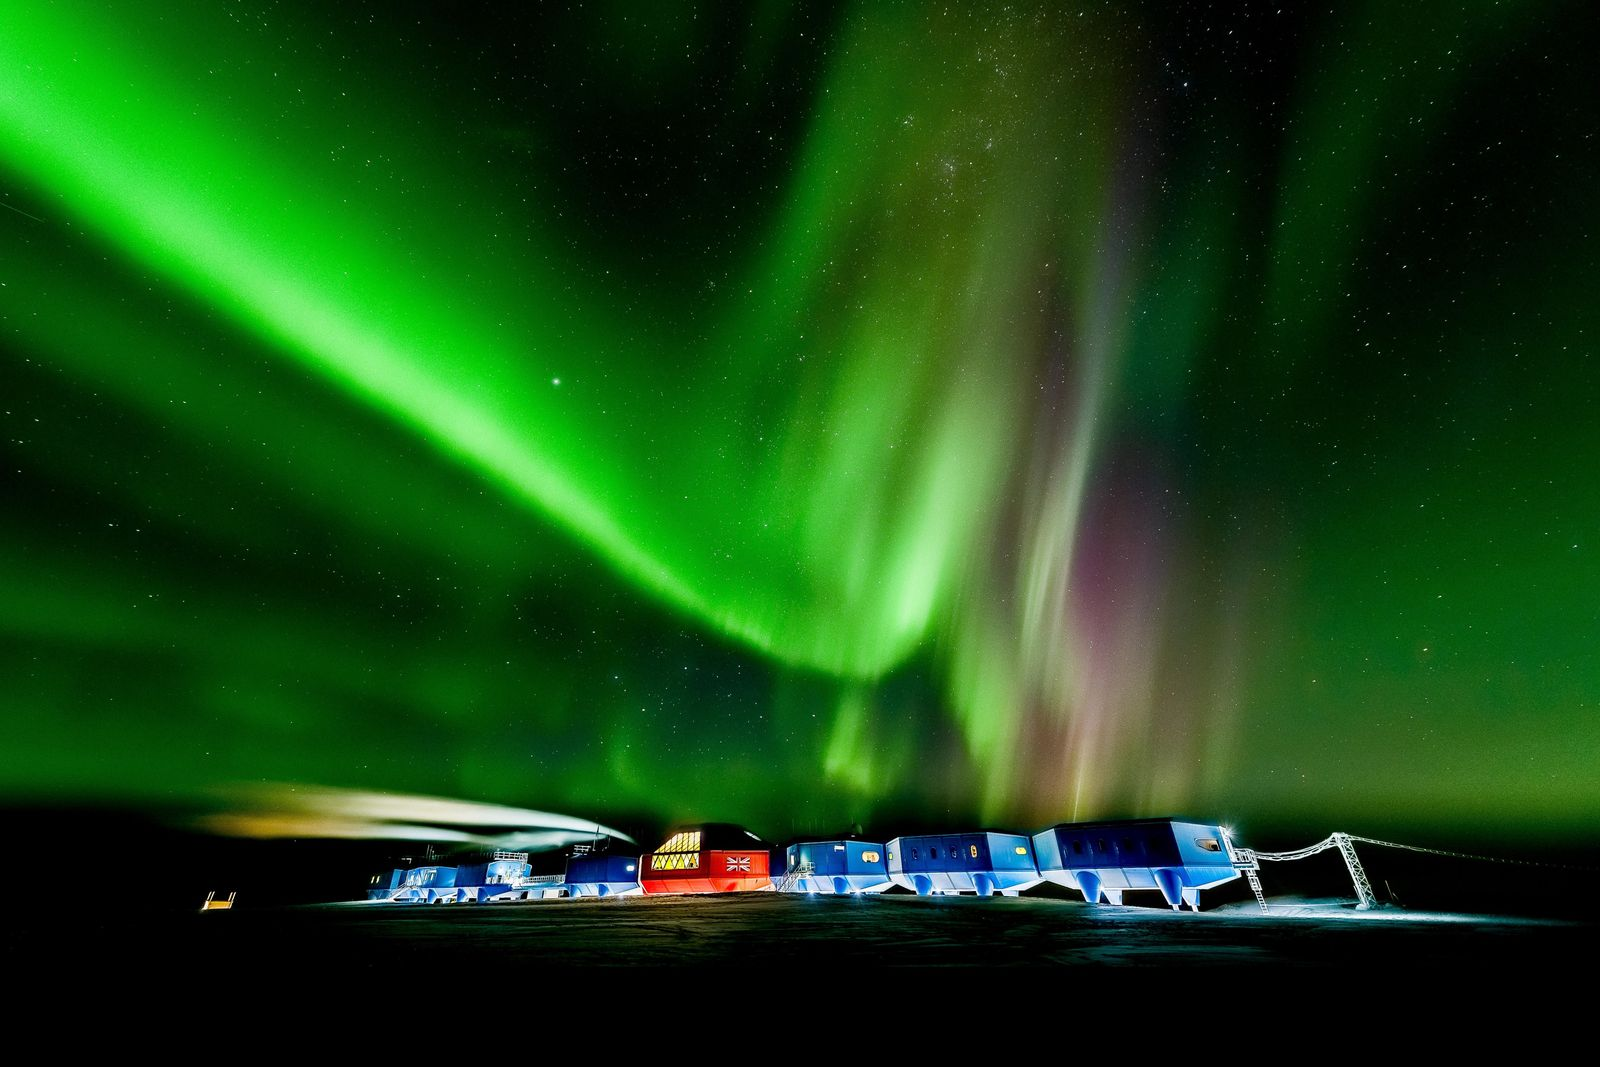 The Aurora Australis over the Halley VI research station.